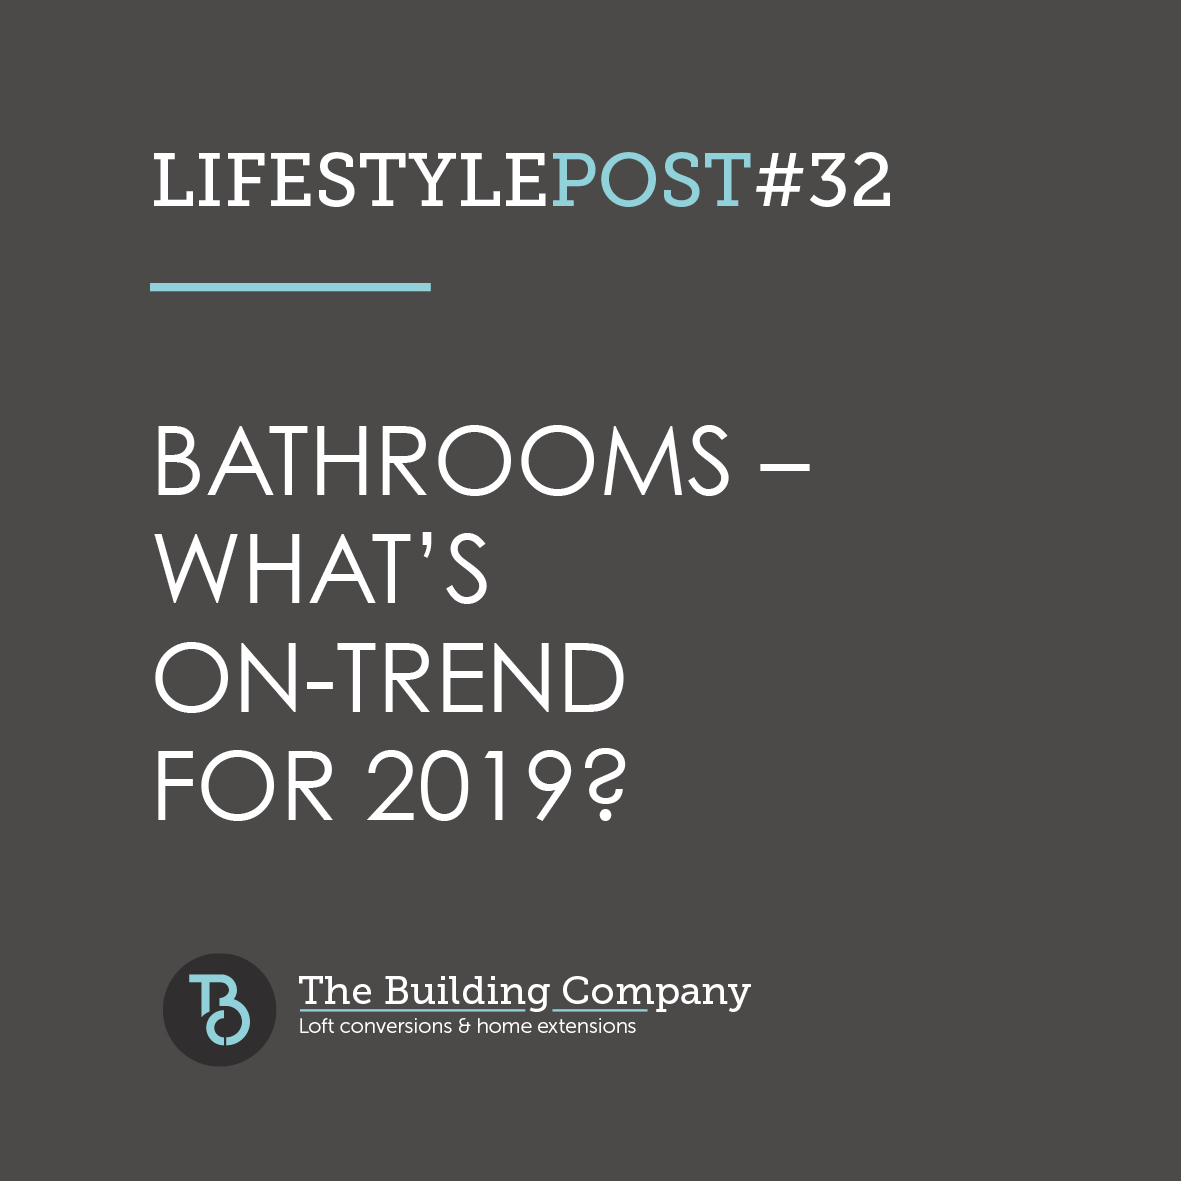 Bathrooms – what's on-trend for 2019 in East Finchley and Enfield?